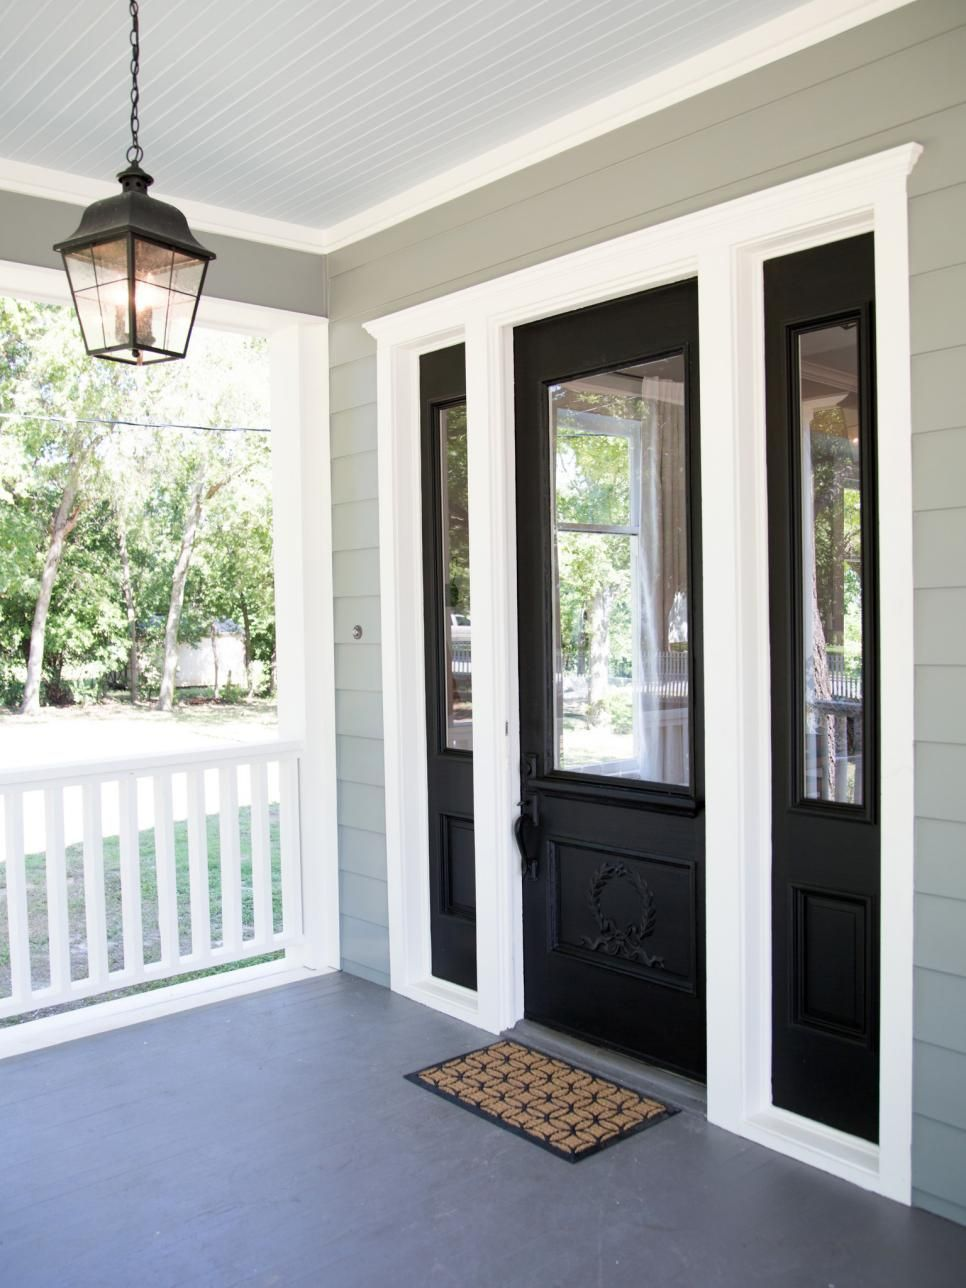 7 Amazing Black Front Door Ideas | Joanna gaines, House building and ...